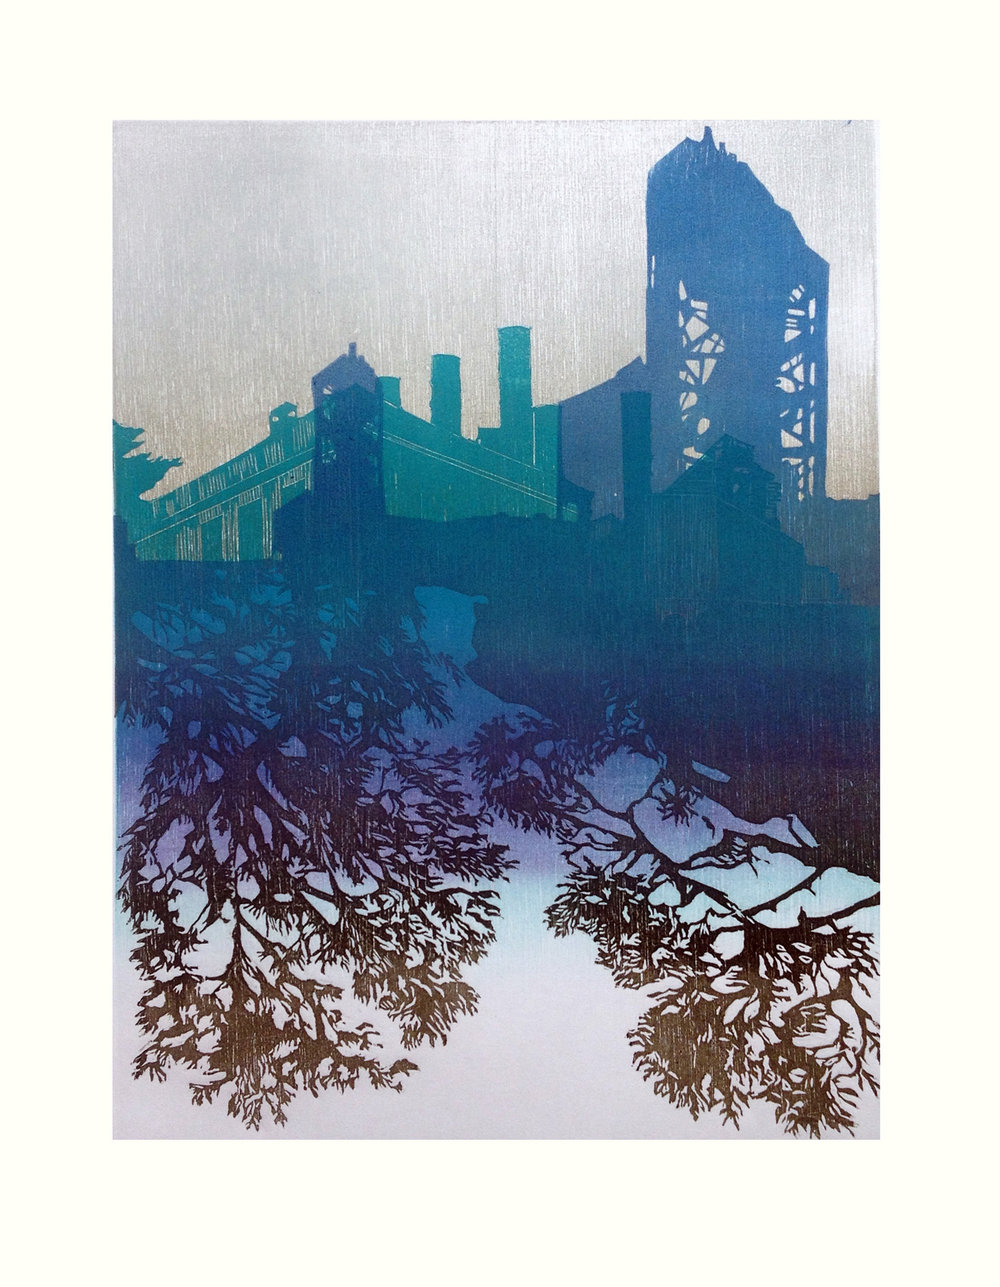 Jennifer Manzella   Skylines 3  Multiple Woodblock Print 20 x 16 inches, APS 234G